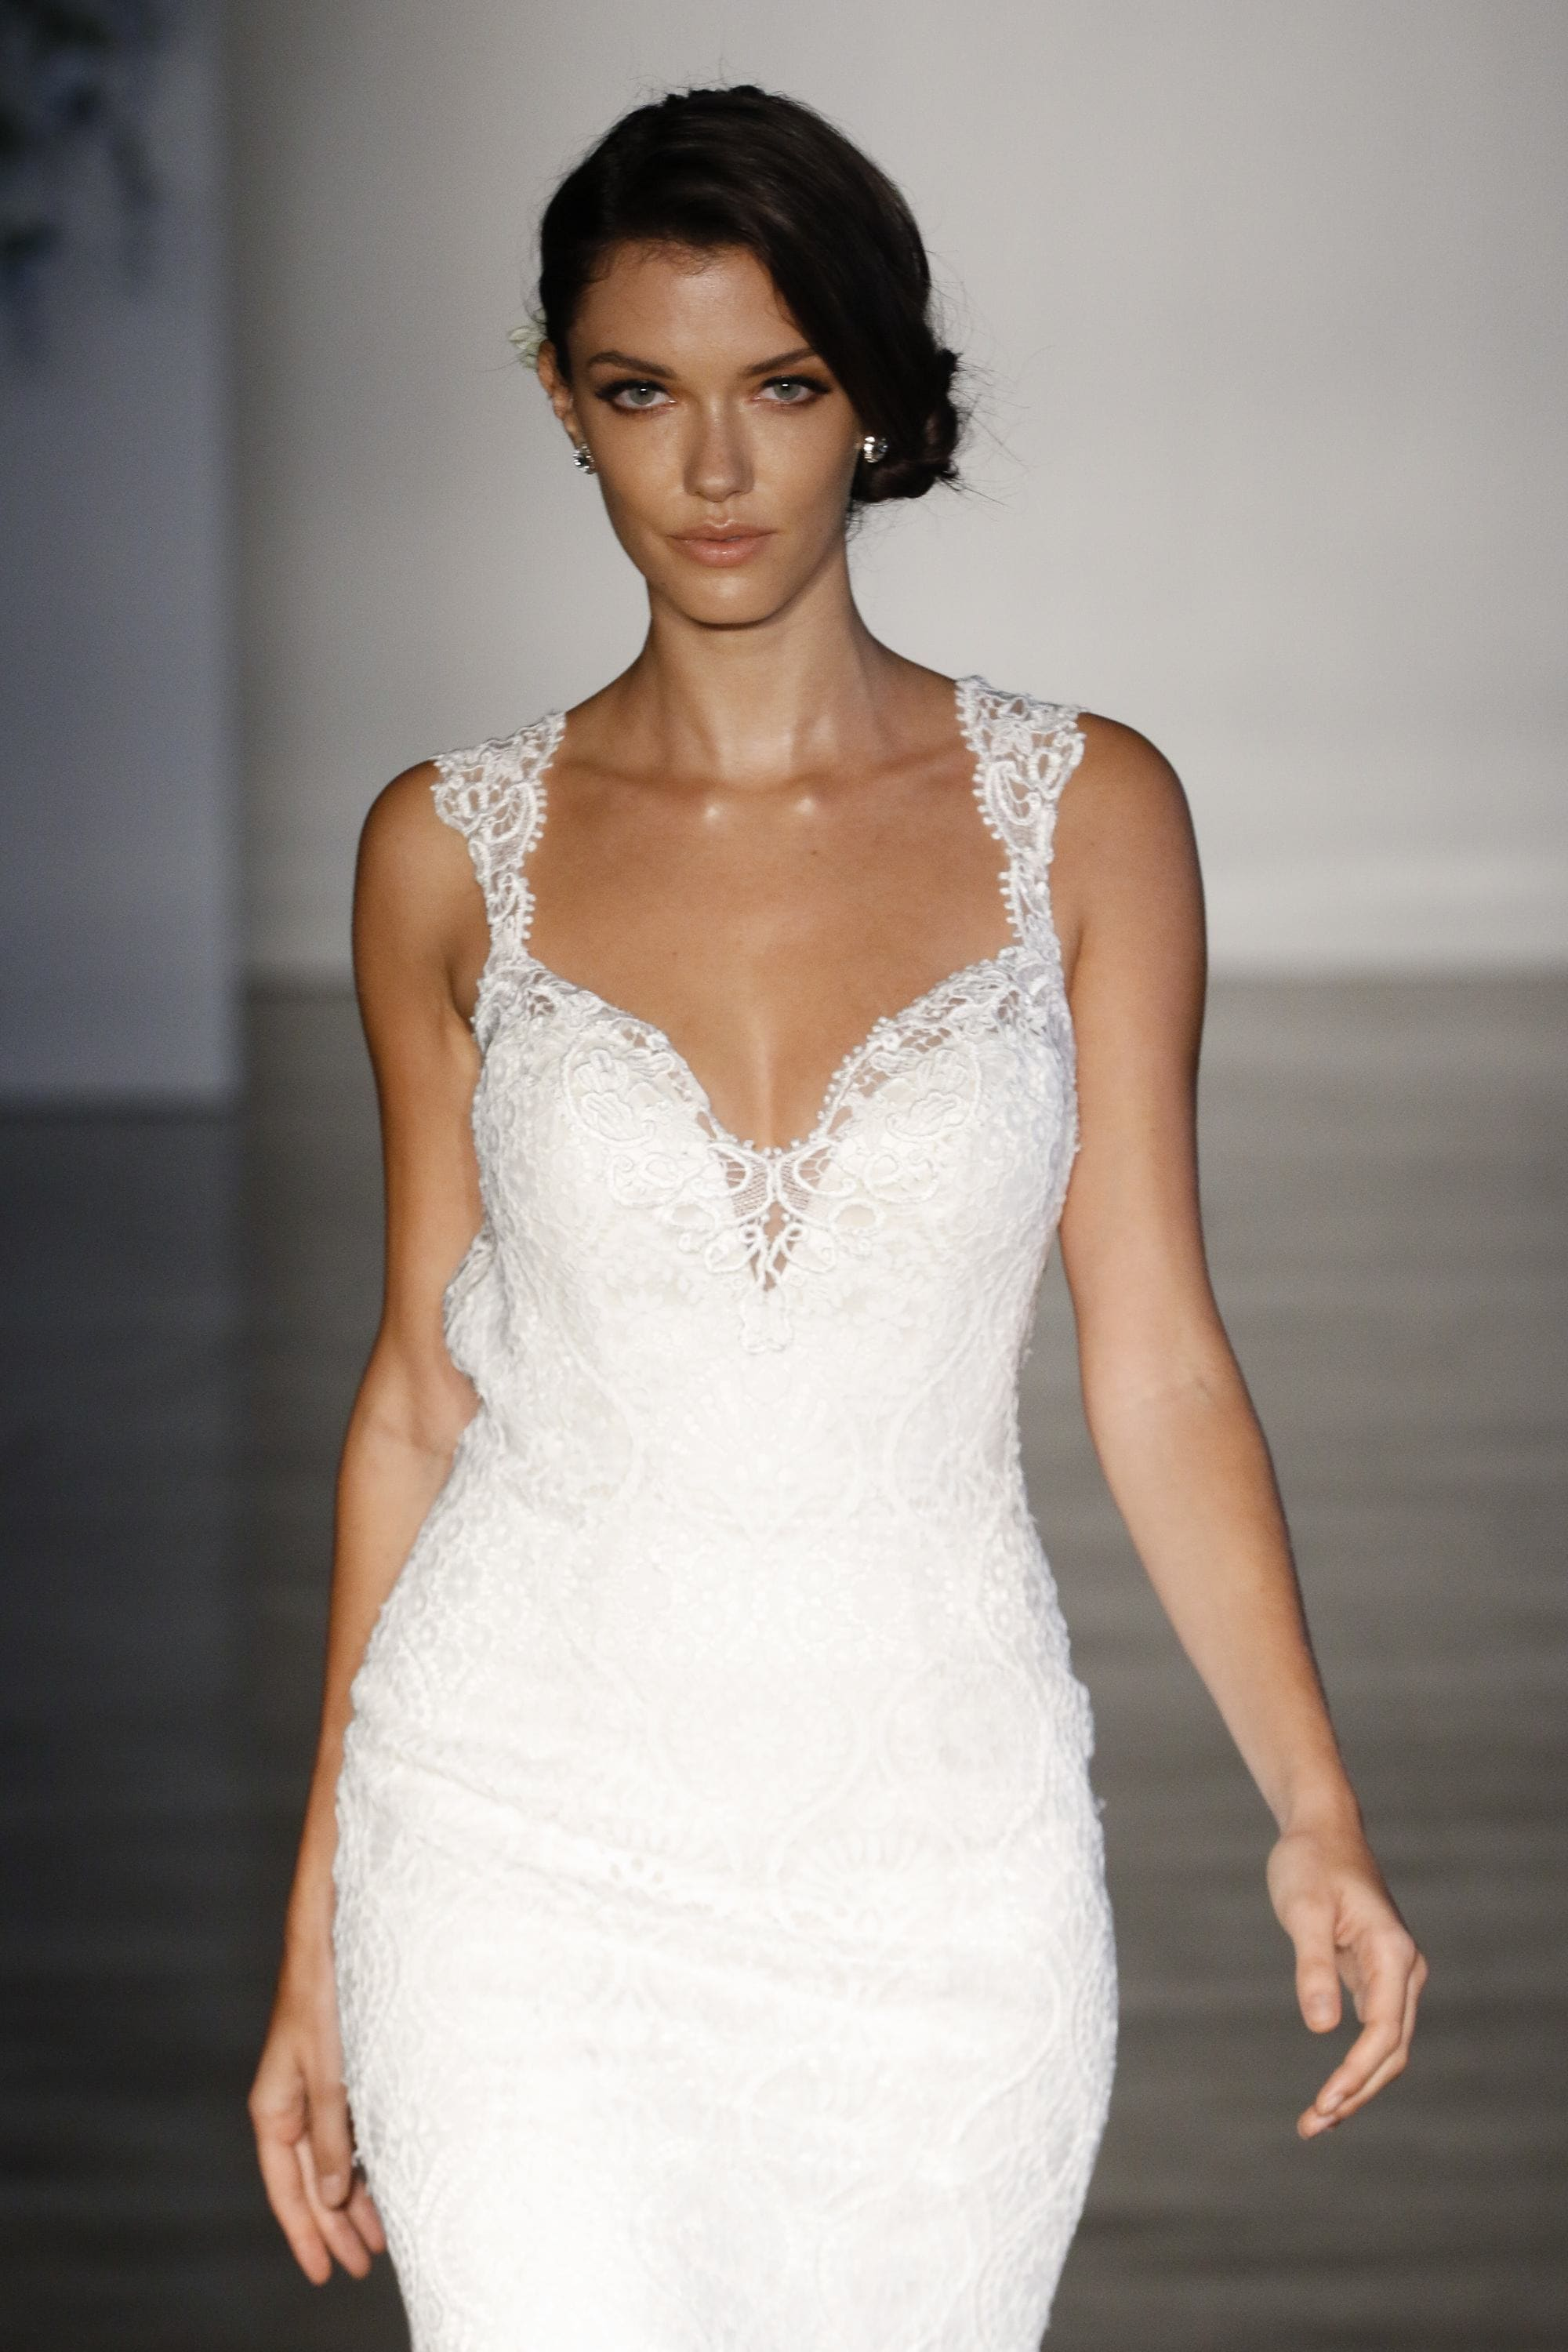 bb2b0b1ed61 brunette bridal model on the runway with a side chignon hairstyle